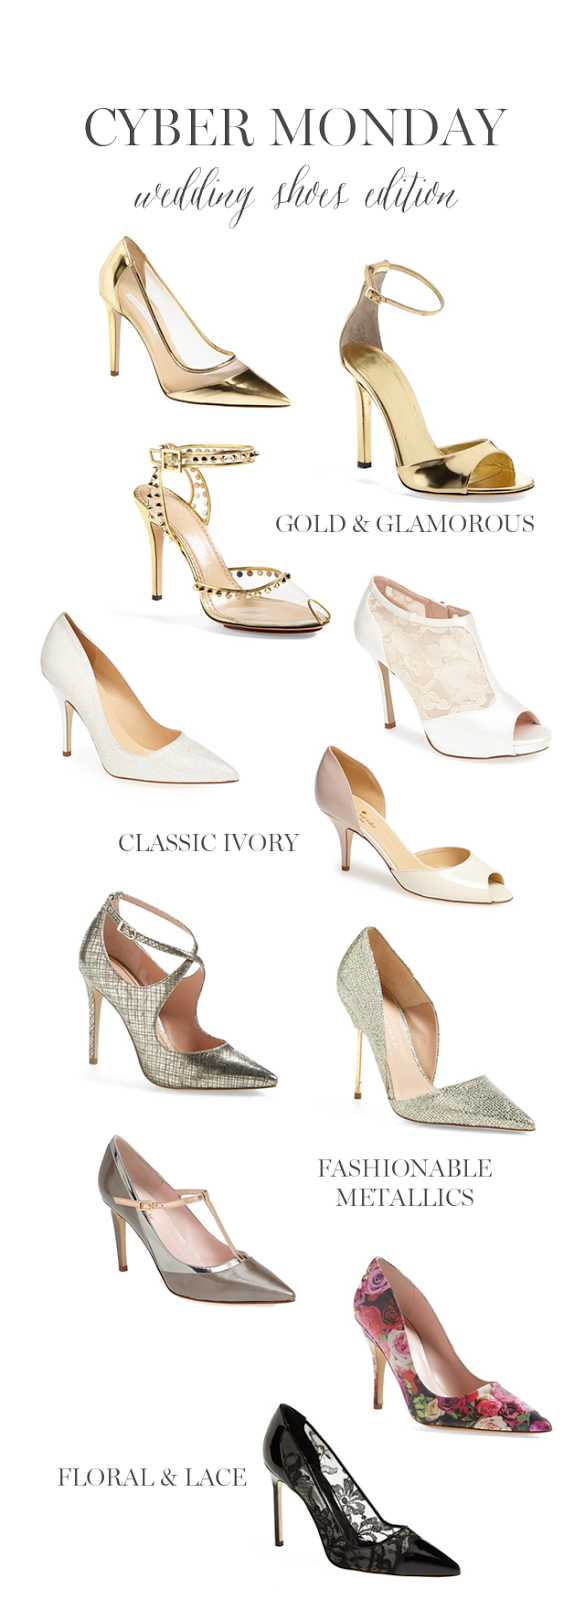 Gold, Metallic, Ivory, Lace, and Floral wedding high heels for your bridal shoes!